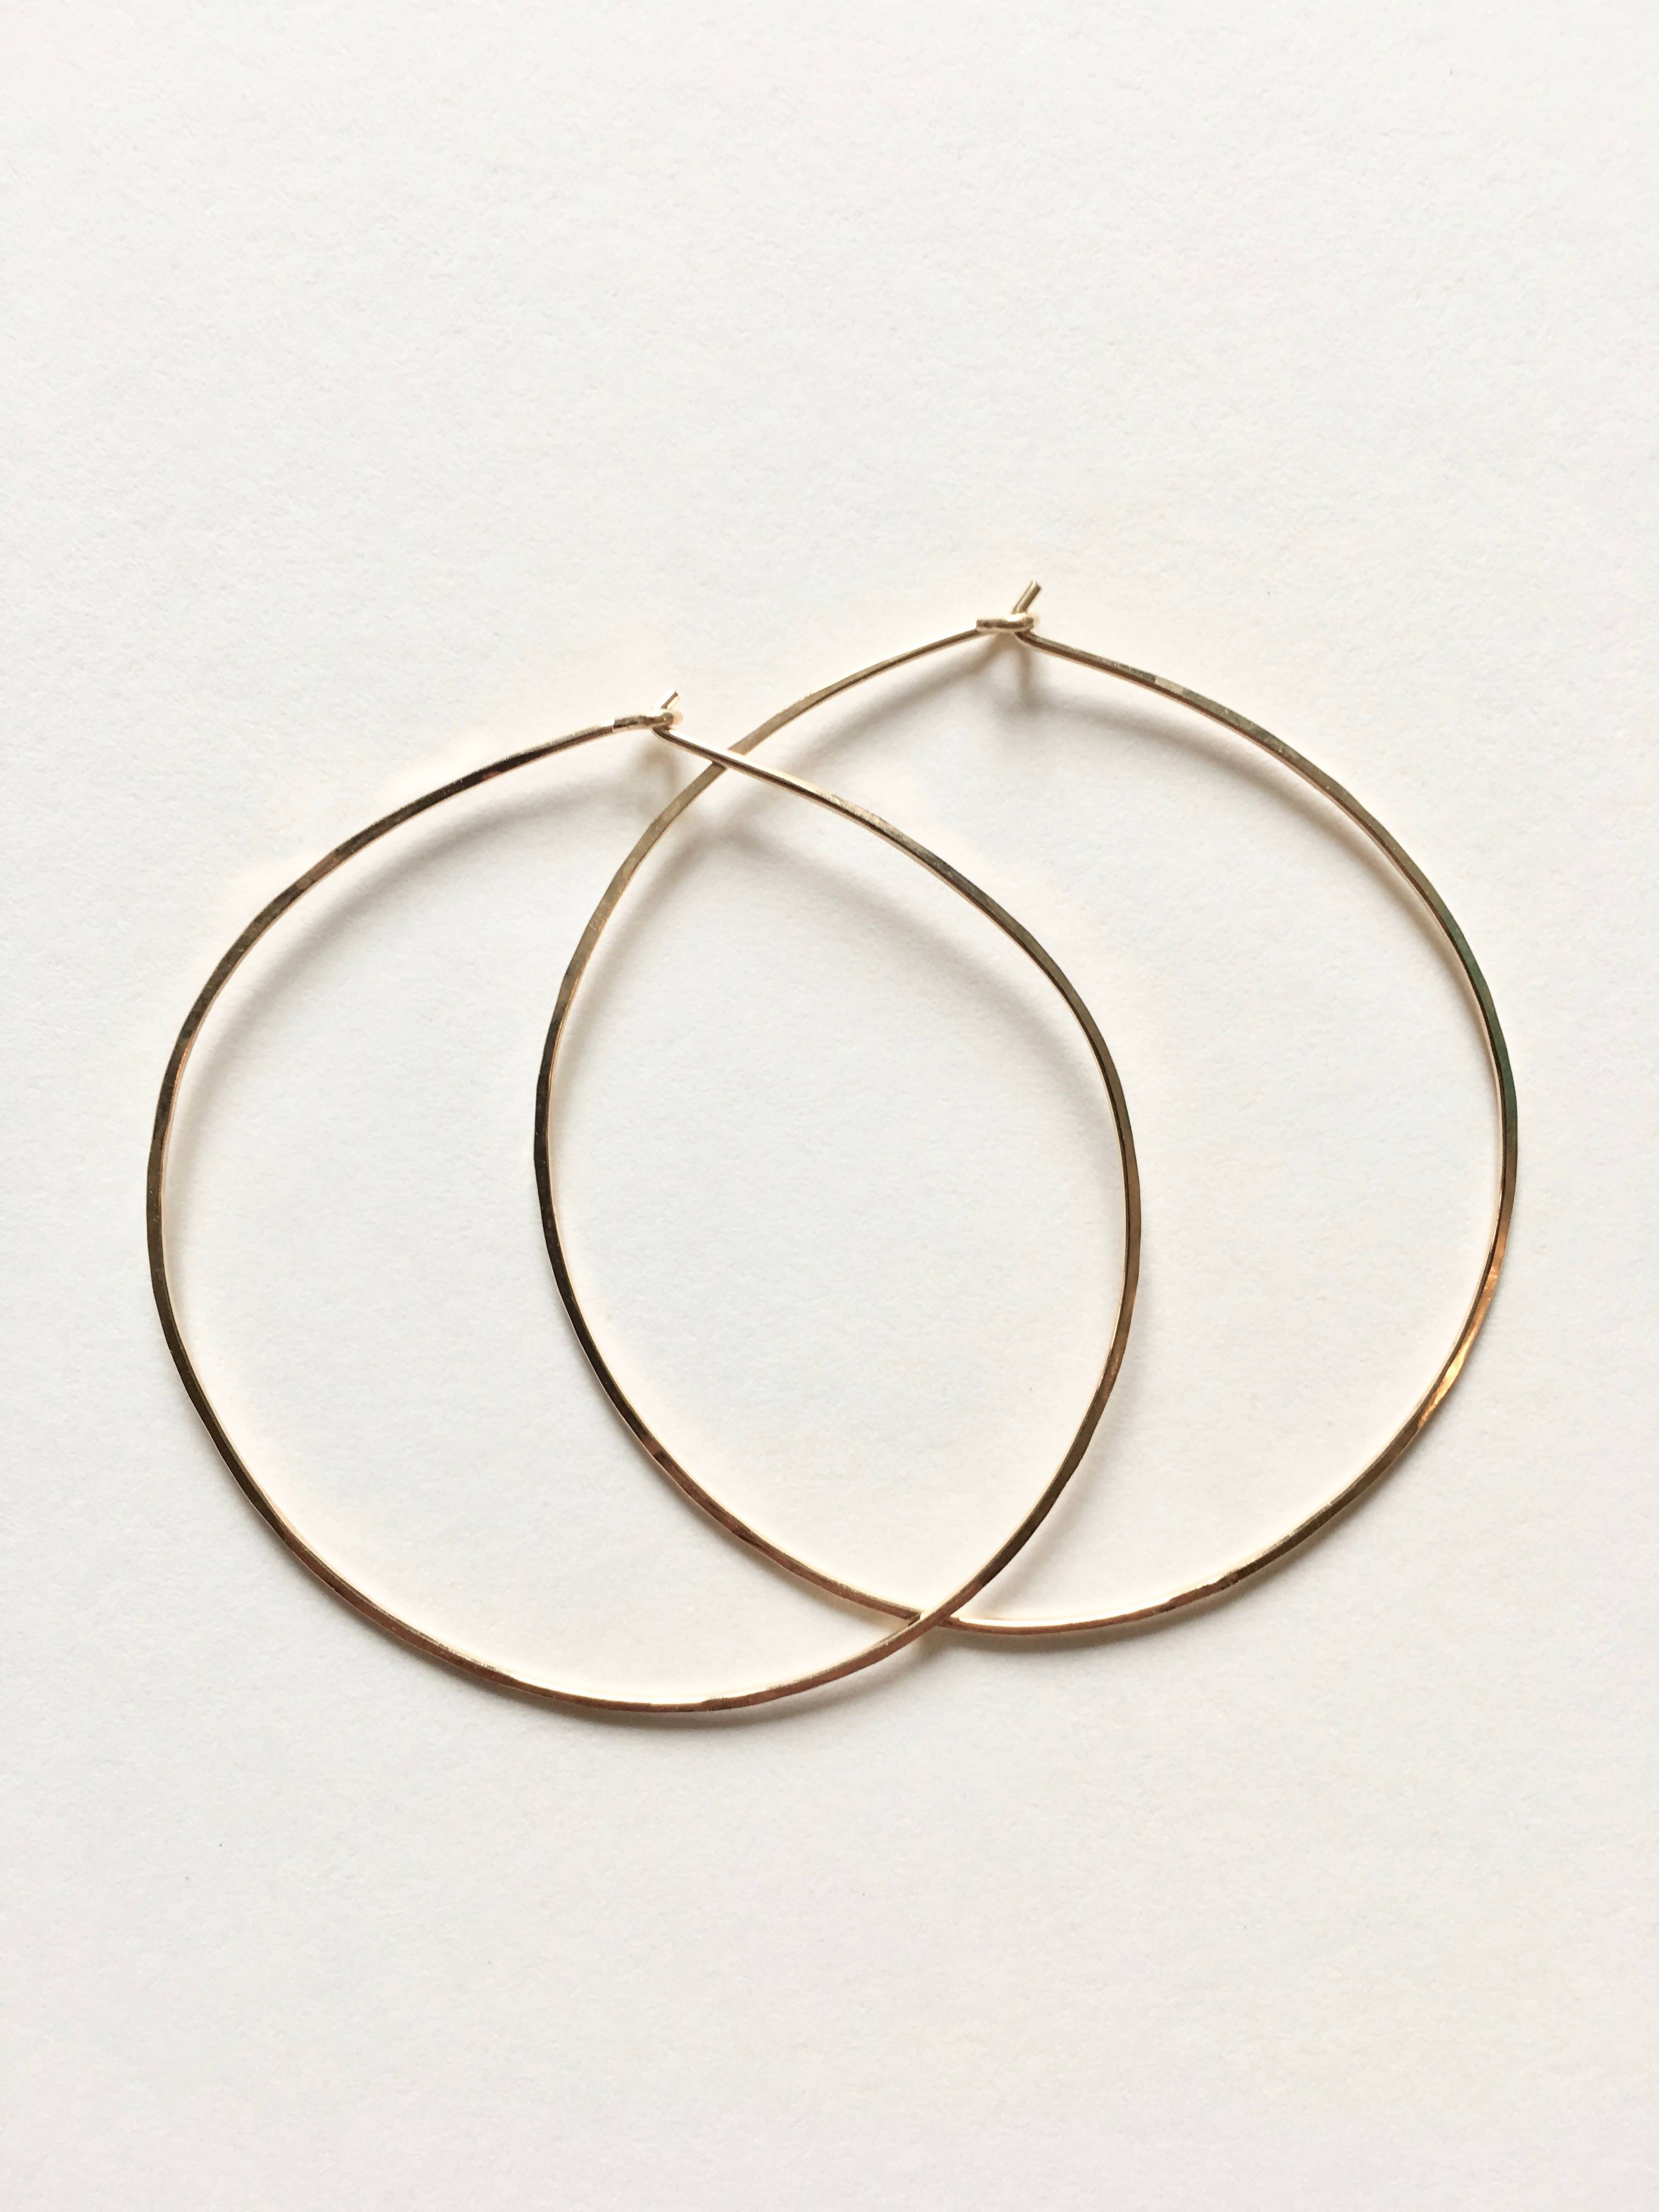 Hand Hammered Thin Wire Hoop Earrings - Large